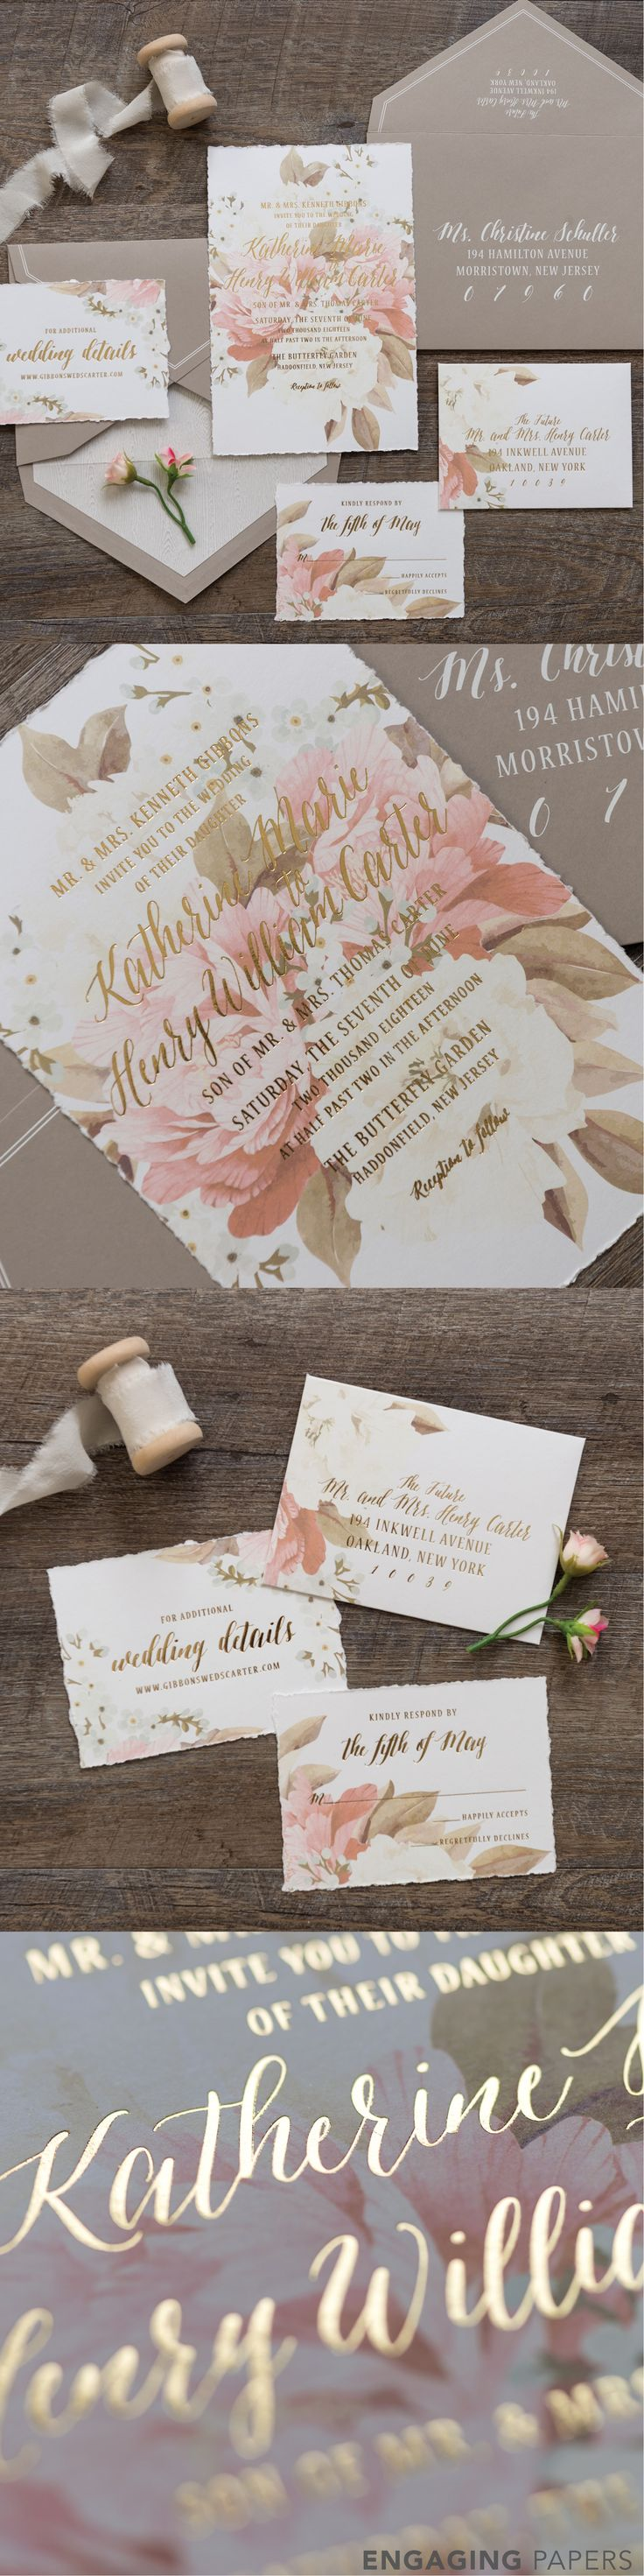 22 Best Wedding Invitations Images On Pinterest Wedding Stuff